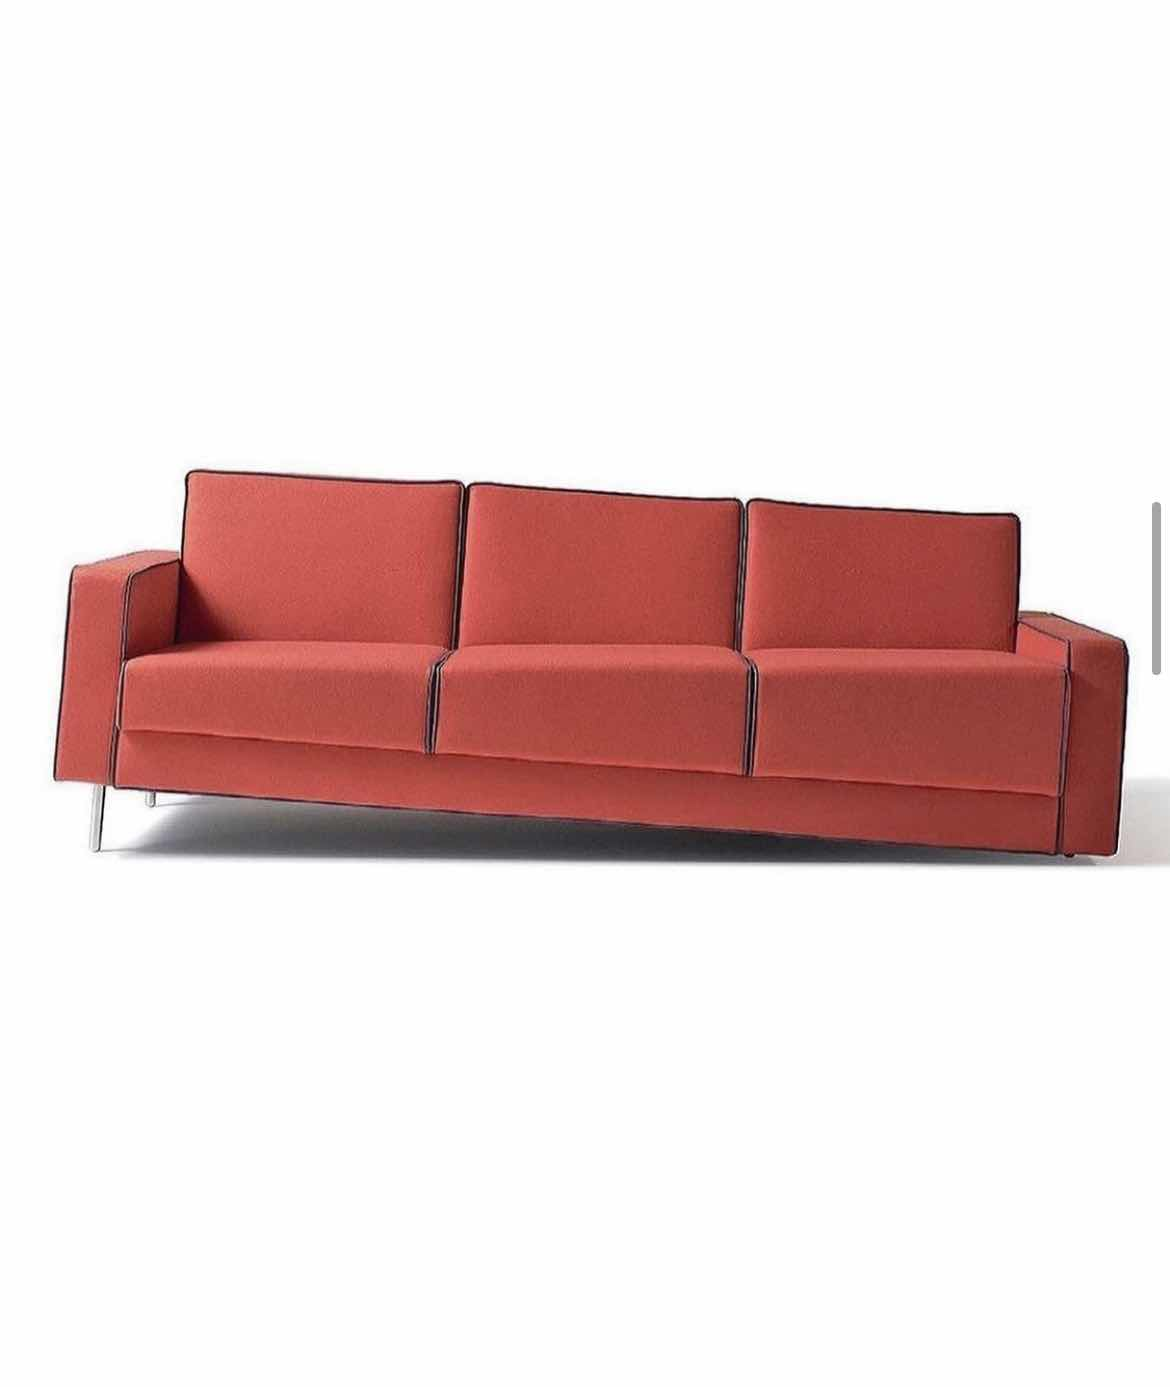 The Adaptation Couch